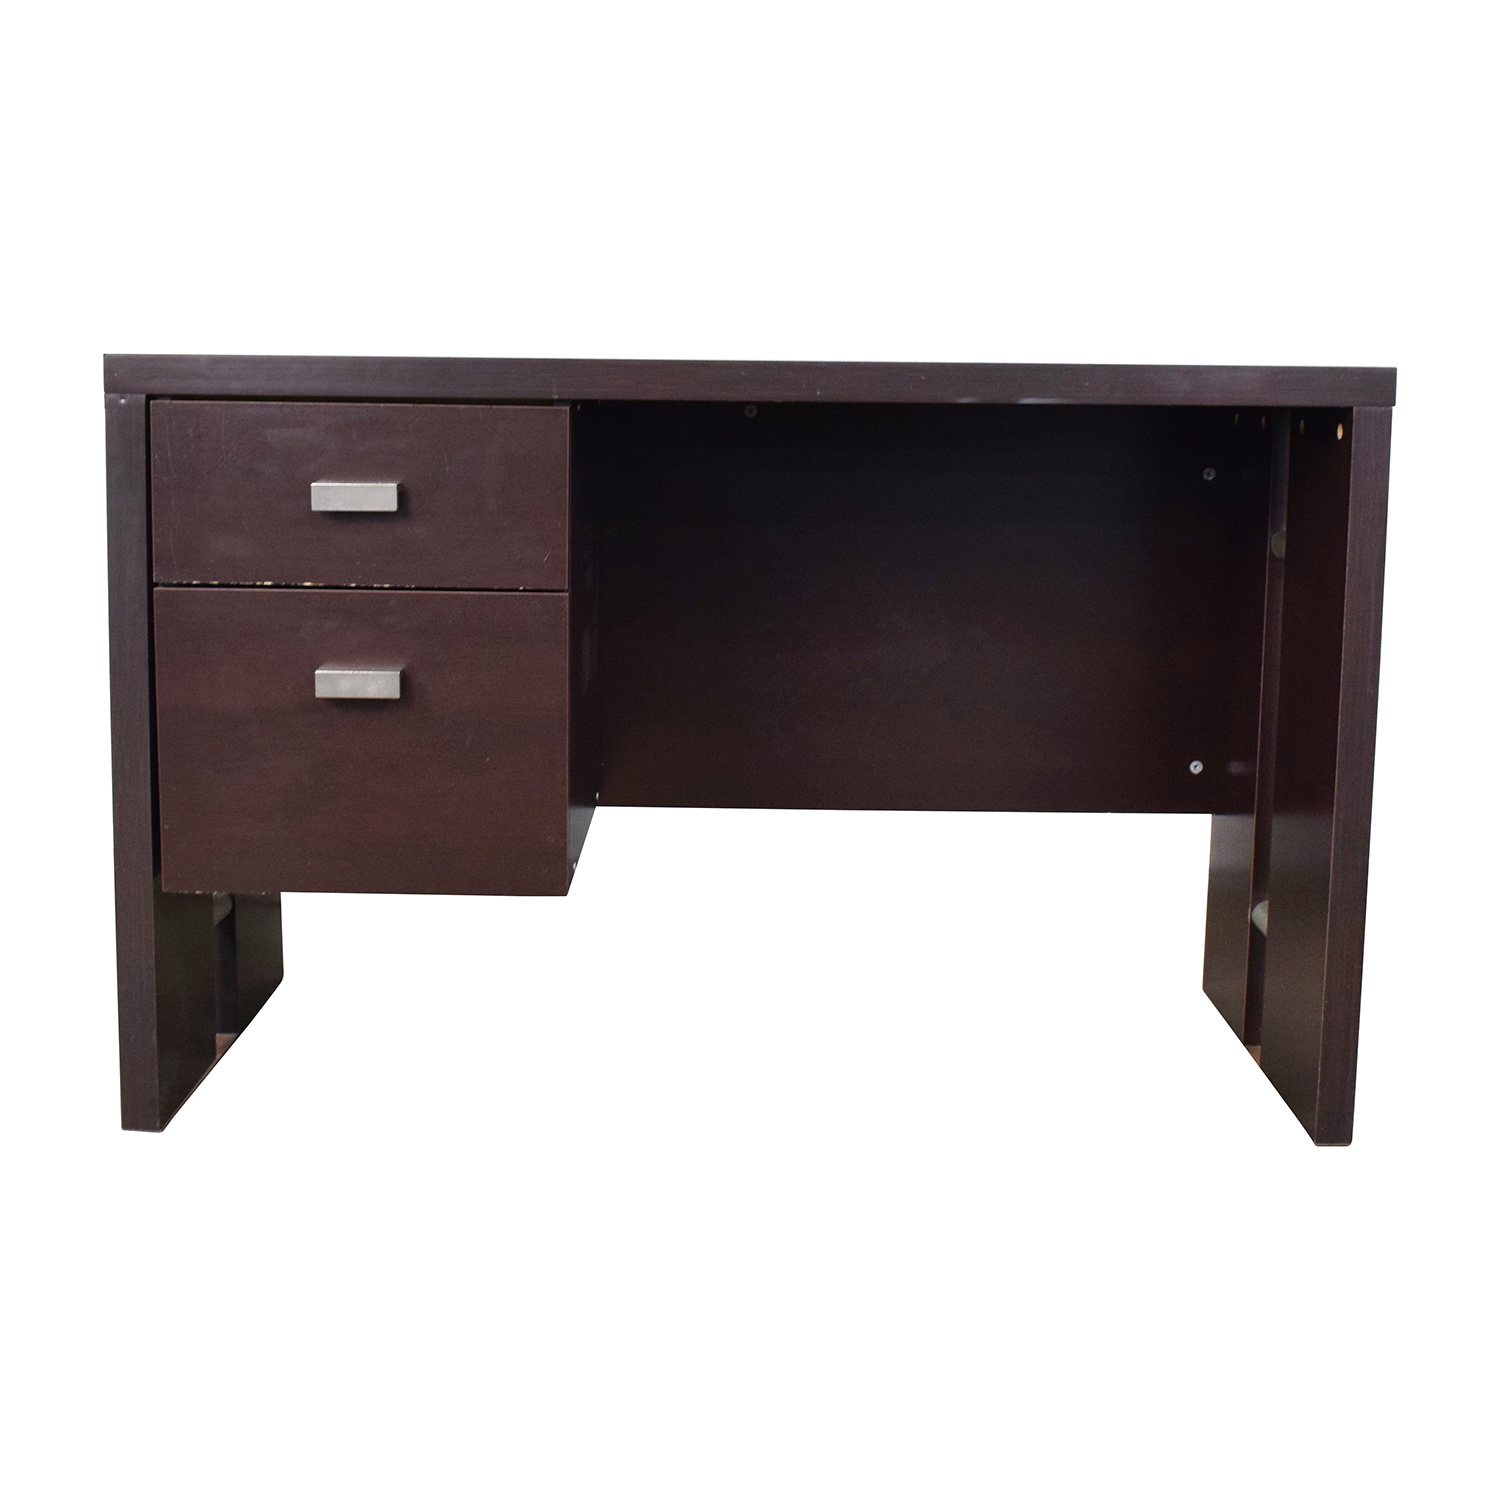 office desk walmart. Walmart Brown Desk With Two-Drawers Coupon Office